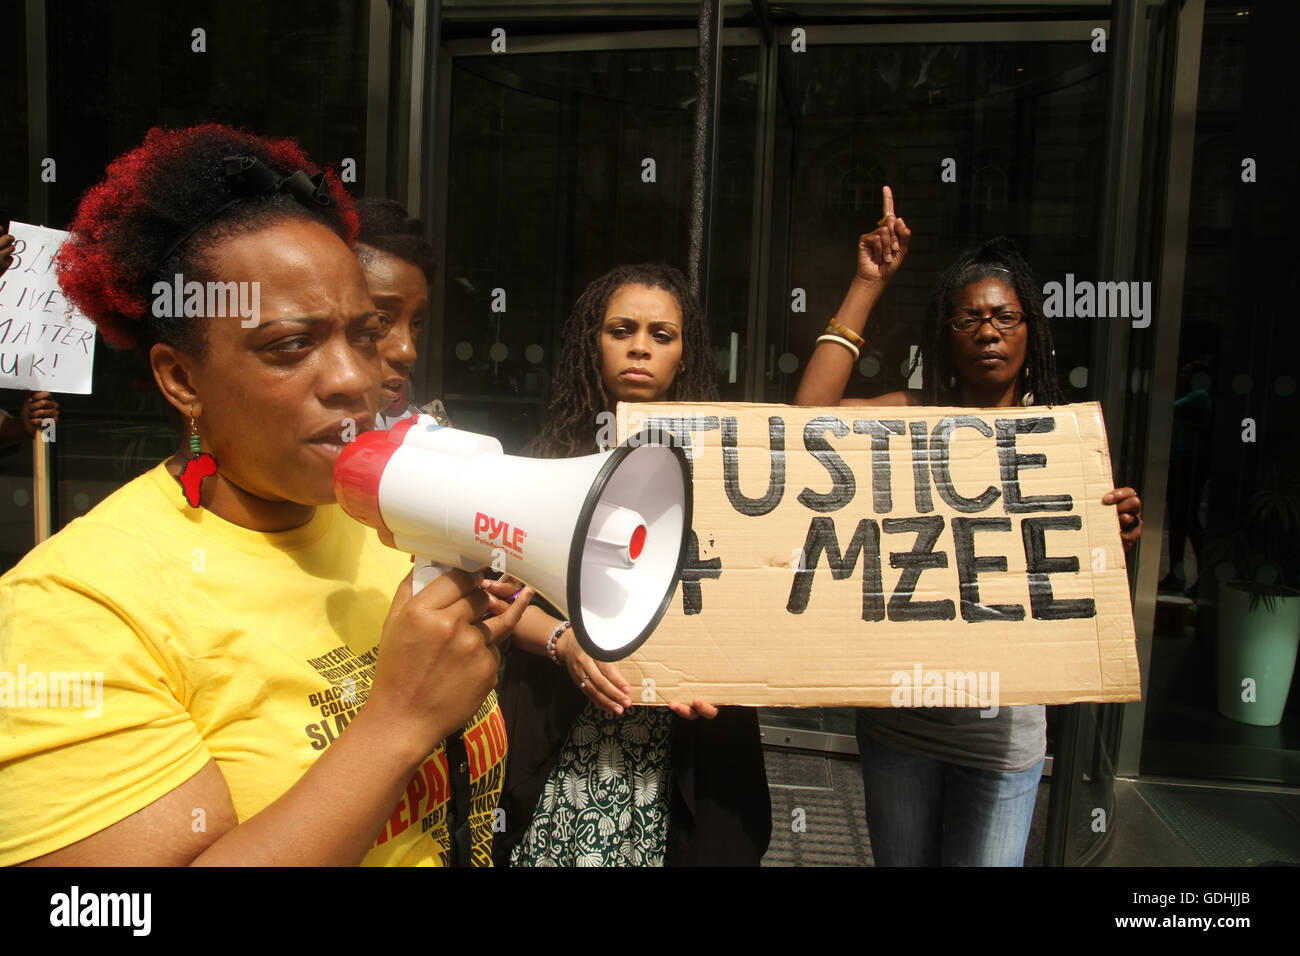 London, UK. 17th July, 2016: Black Lives Matter protesters seen outside the IPCC headquarters in Holbon during - Stock Image